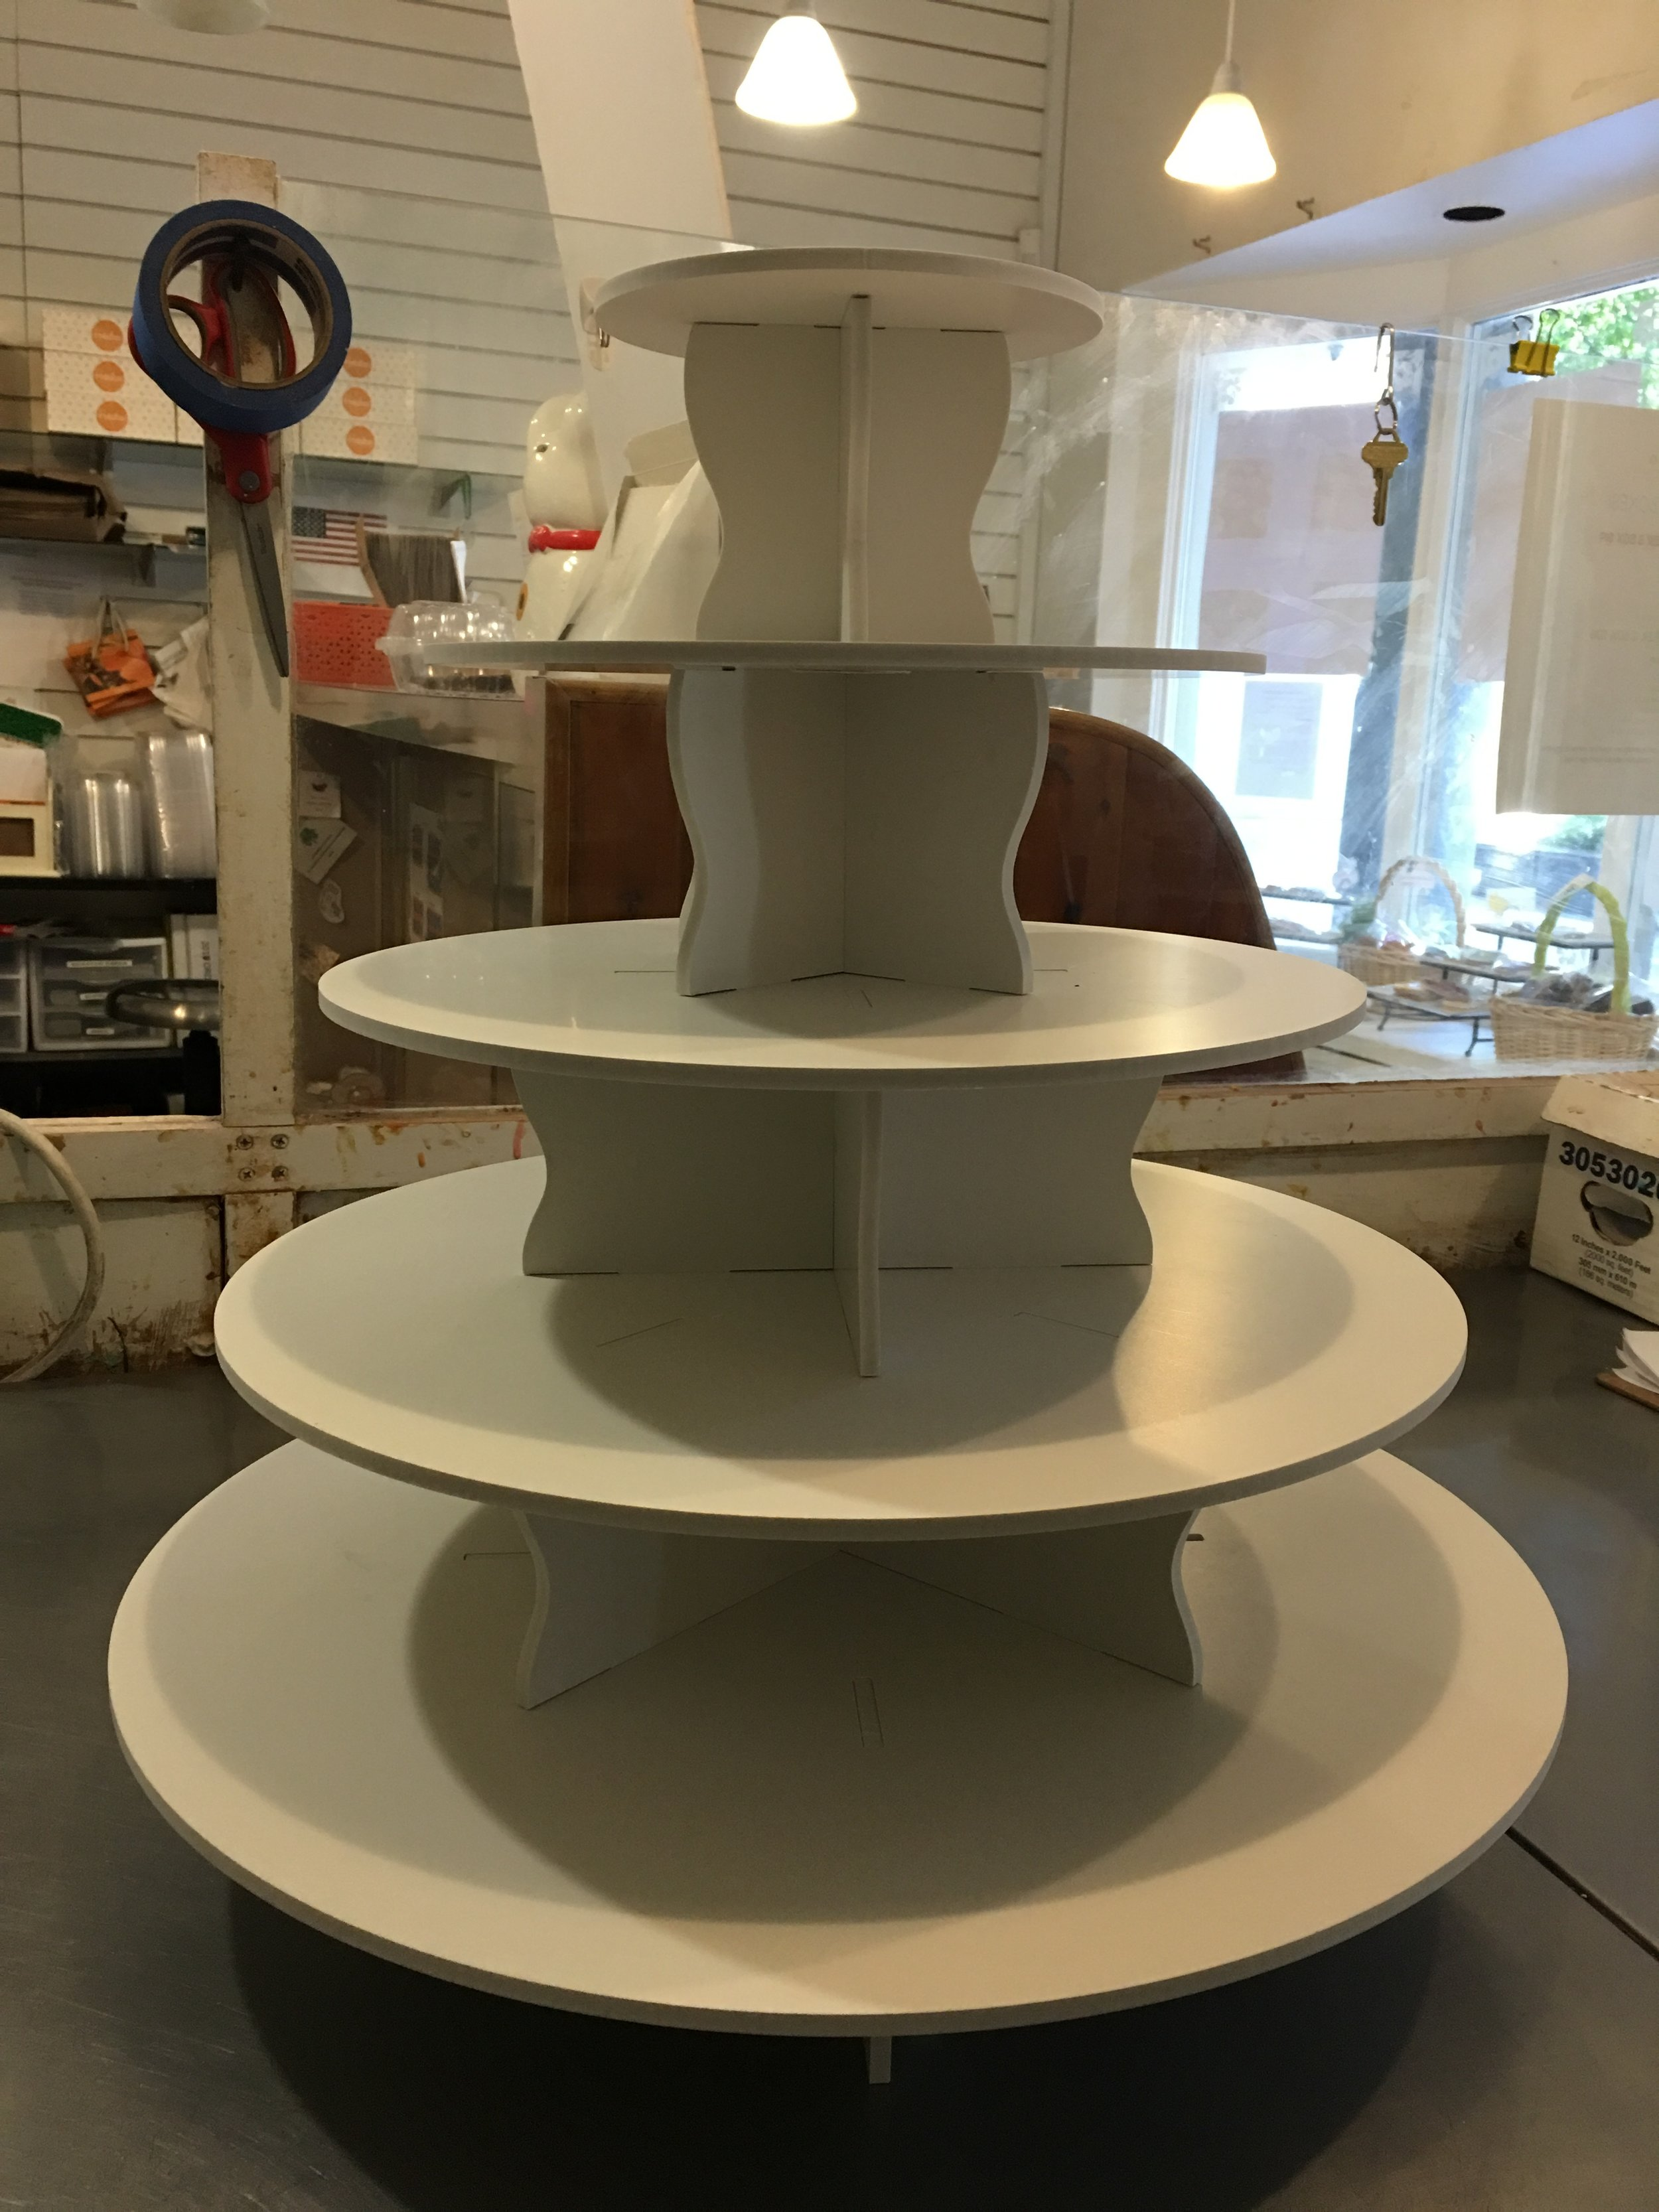 5-Level ROUND tier - Tier is able to hold up to 90 cupcakes.